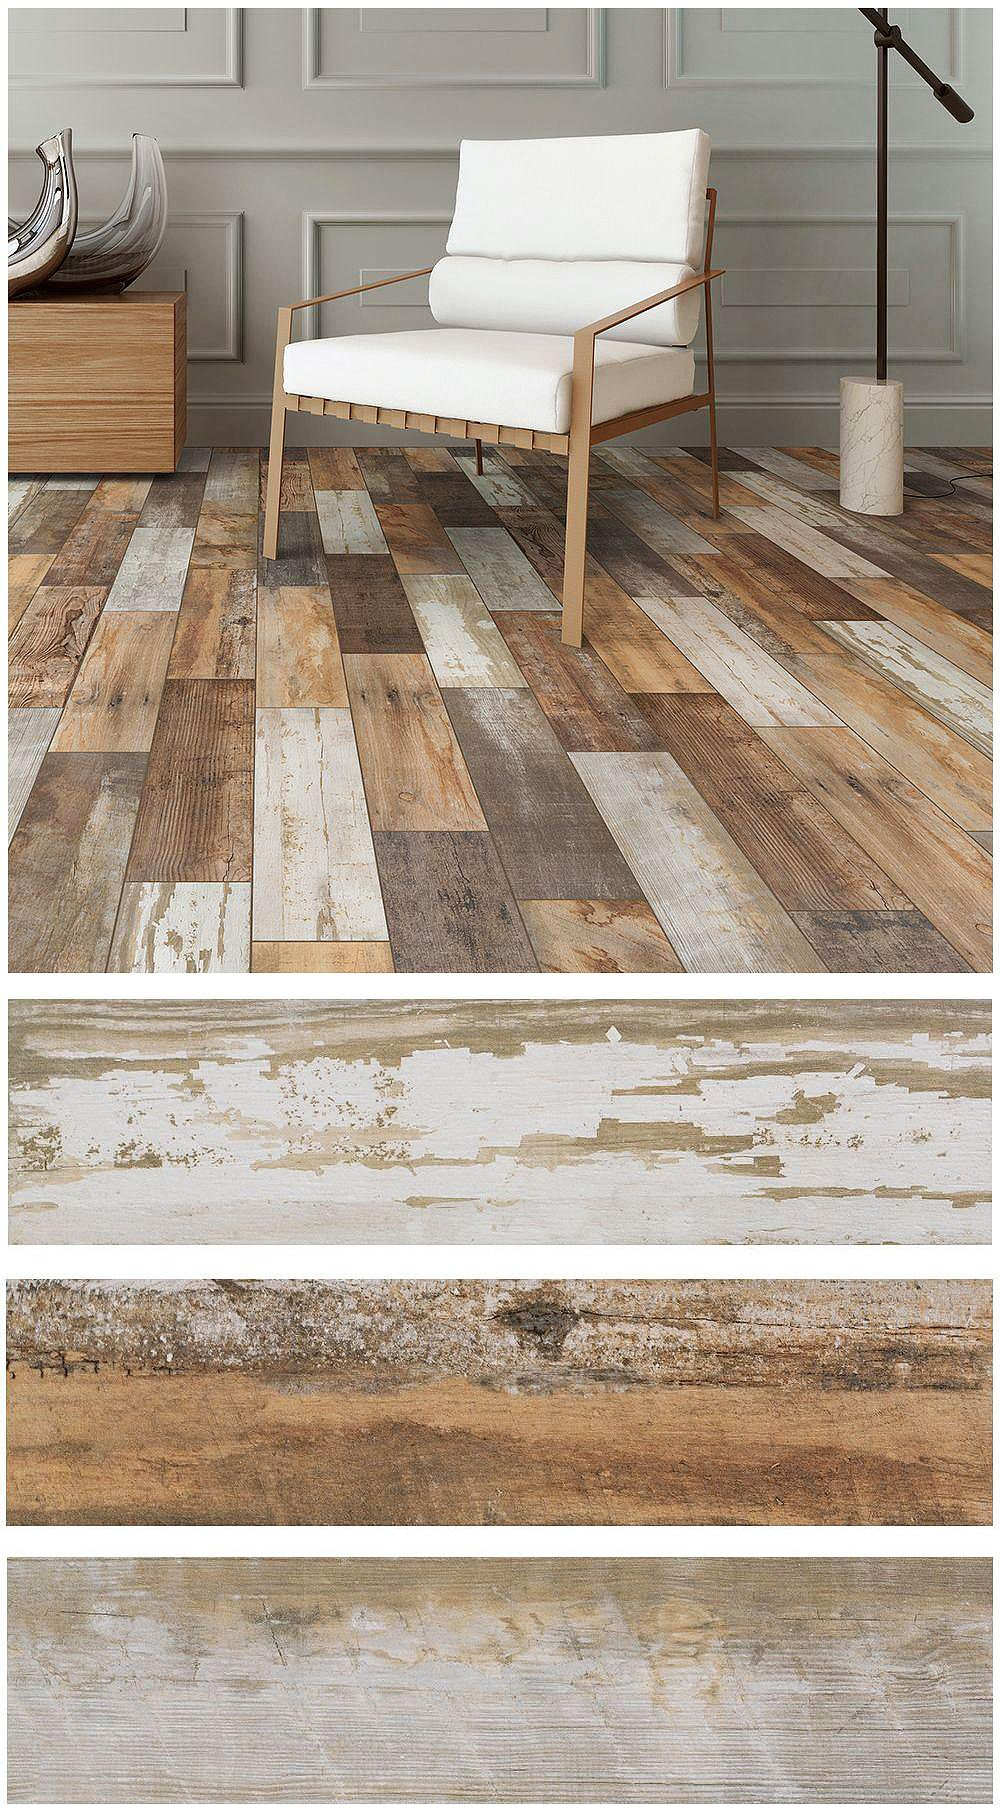 Marazzi montagna wood vintage chic 6 in x 24 in porcelain floor marazzi montagna wood vintage chic 6 in x 24 in porcelain floor and wall tile 1453 sq ft case ulrw624hd1pr the home depot dailygadgetfo Image collections